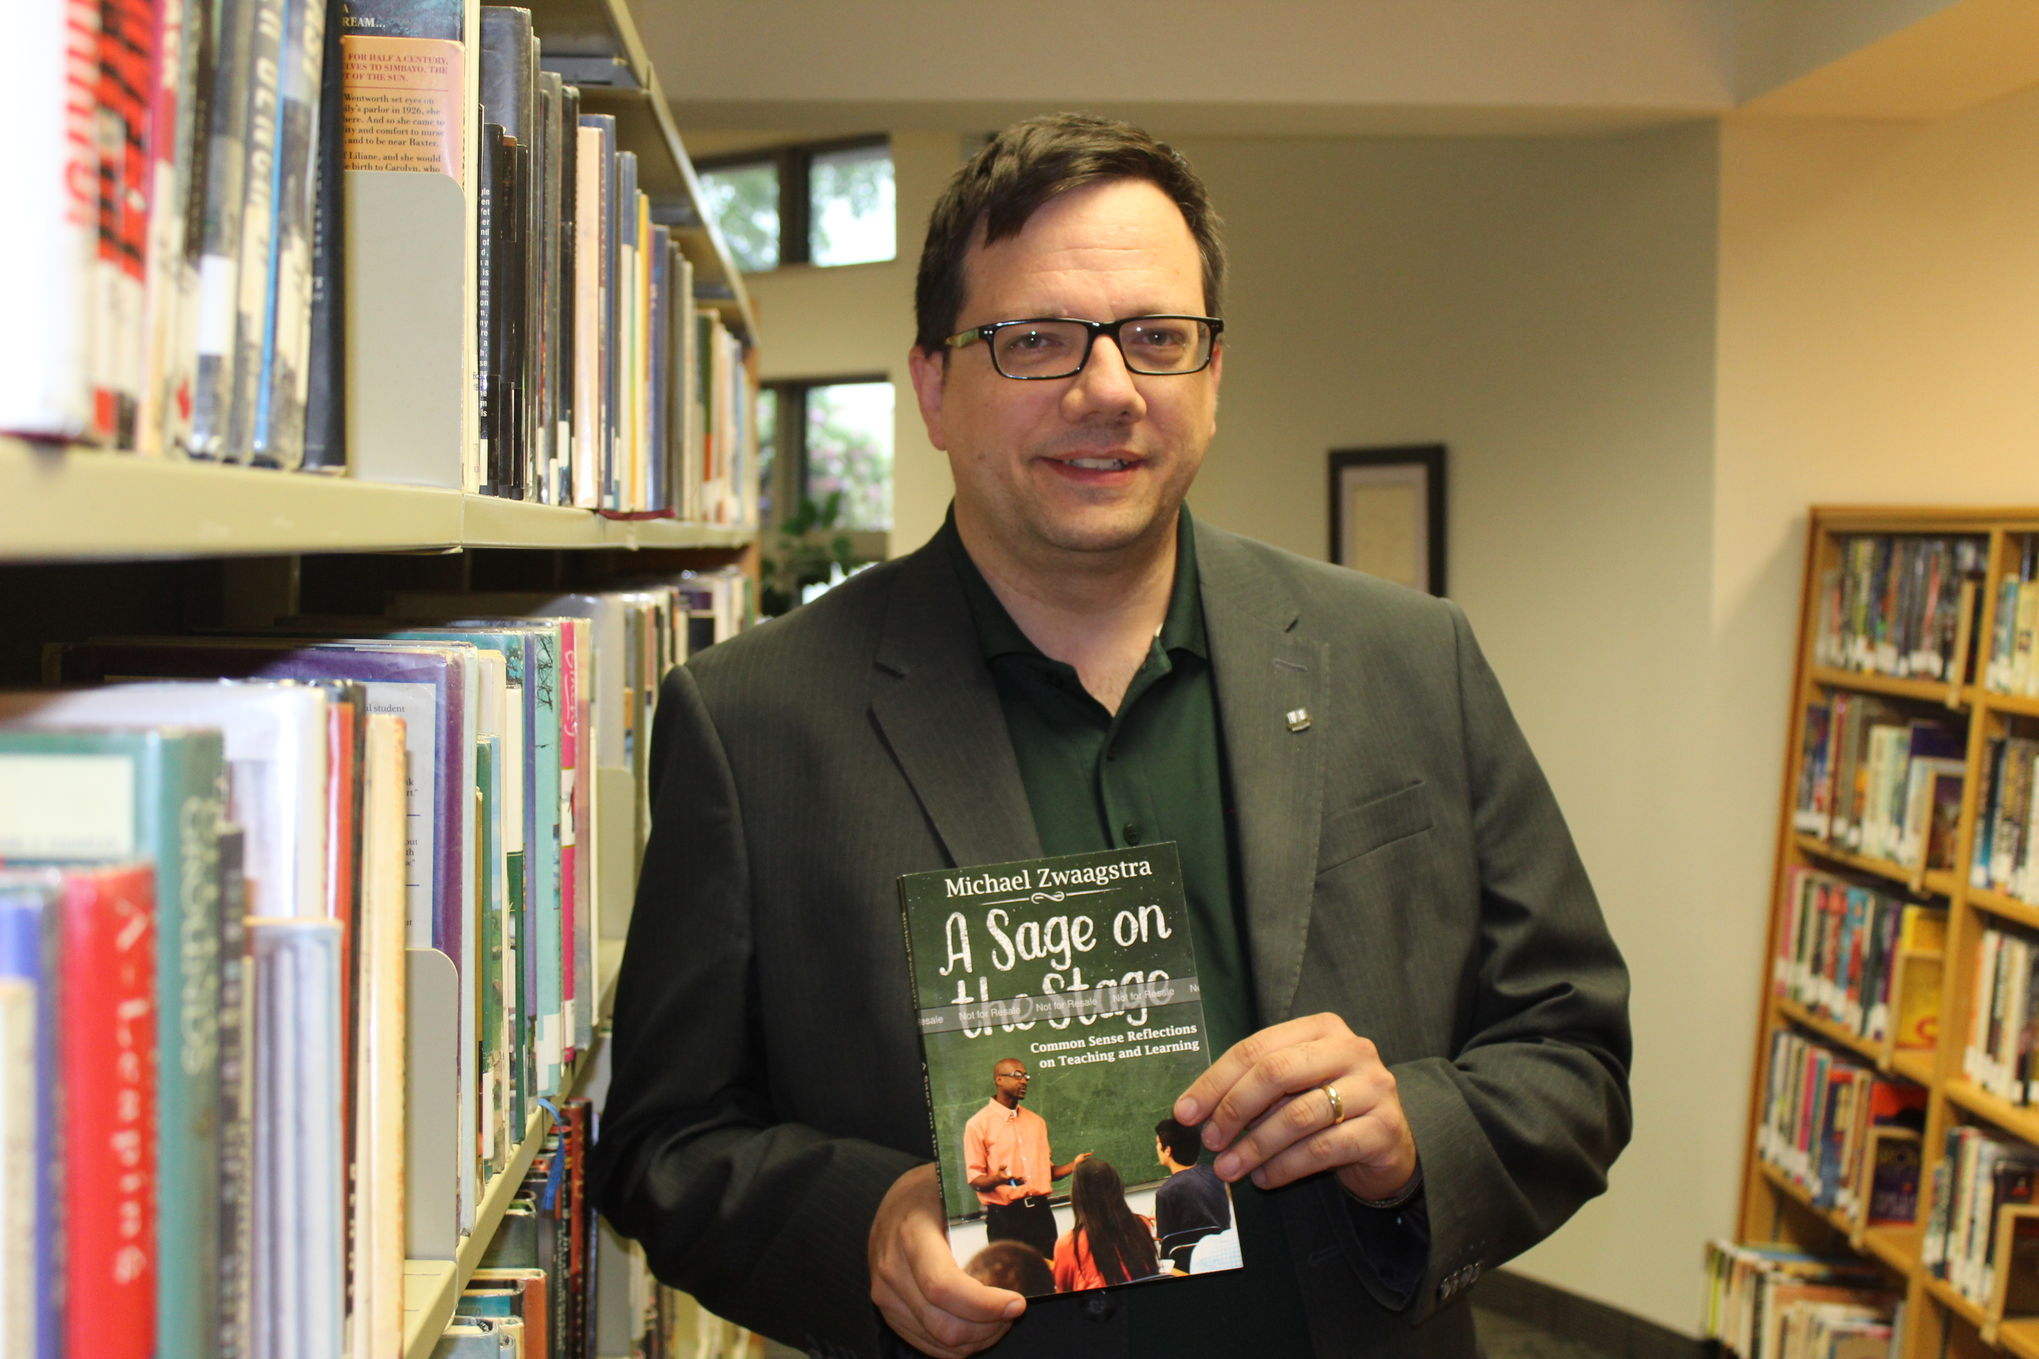 Michael Zwaagstra, a Green Valley School teacher and Steinbach city councillor, displays an advance copy of his new collection of op-eds, A Sage on the Stage, in the Jake Epp Library.